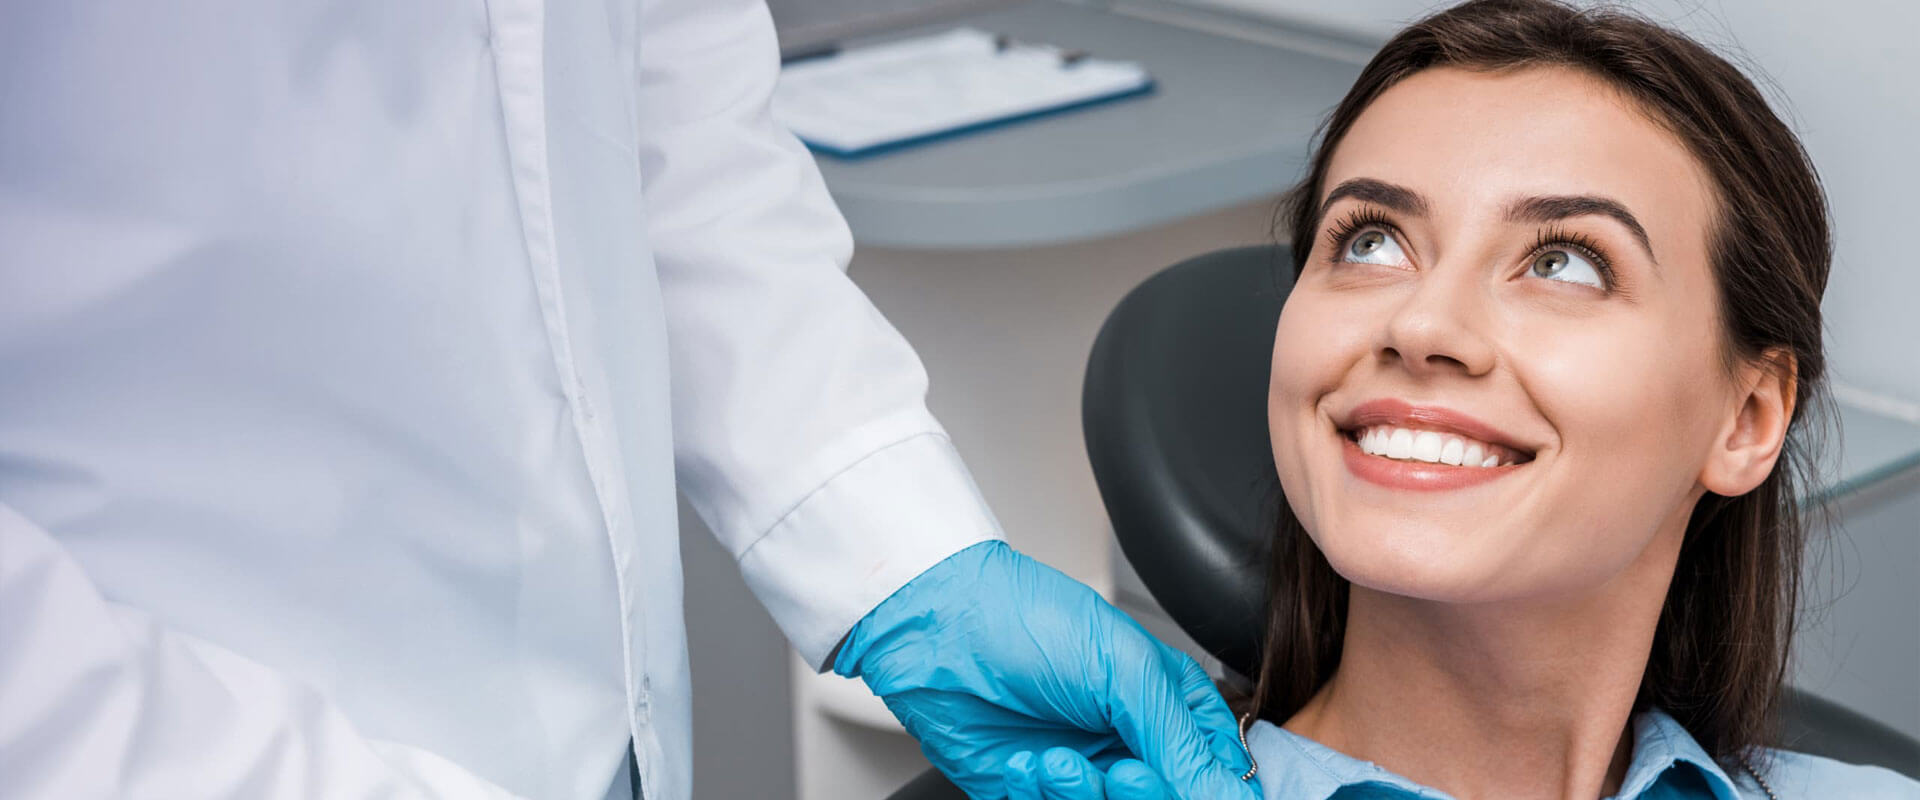 Beautiful young woman smiling looking at the Dentist